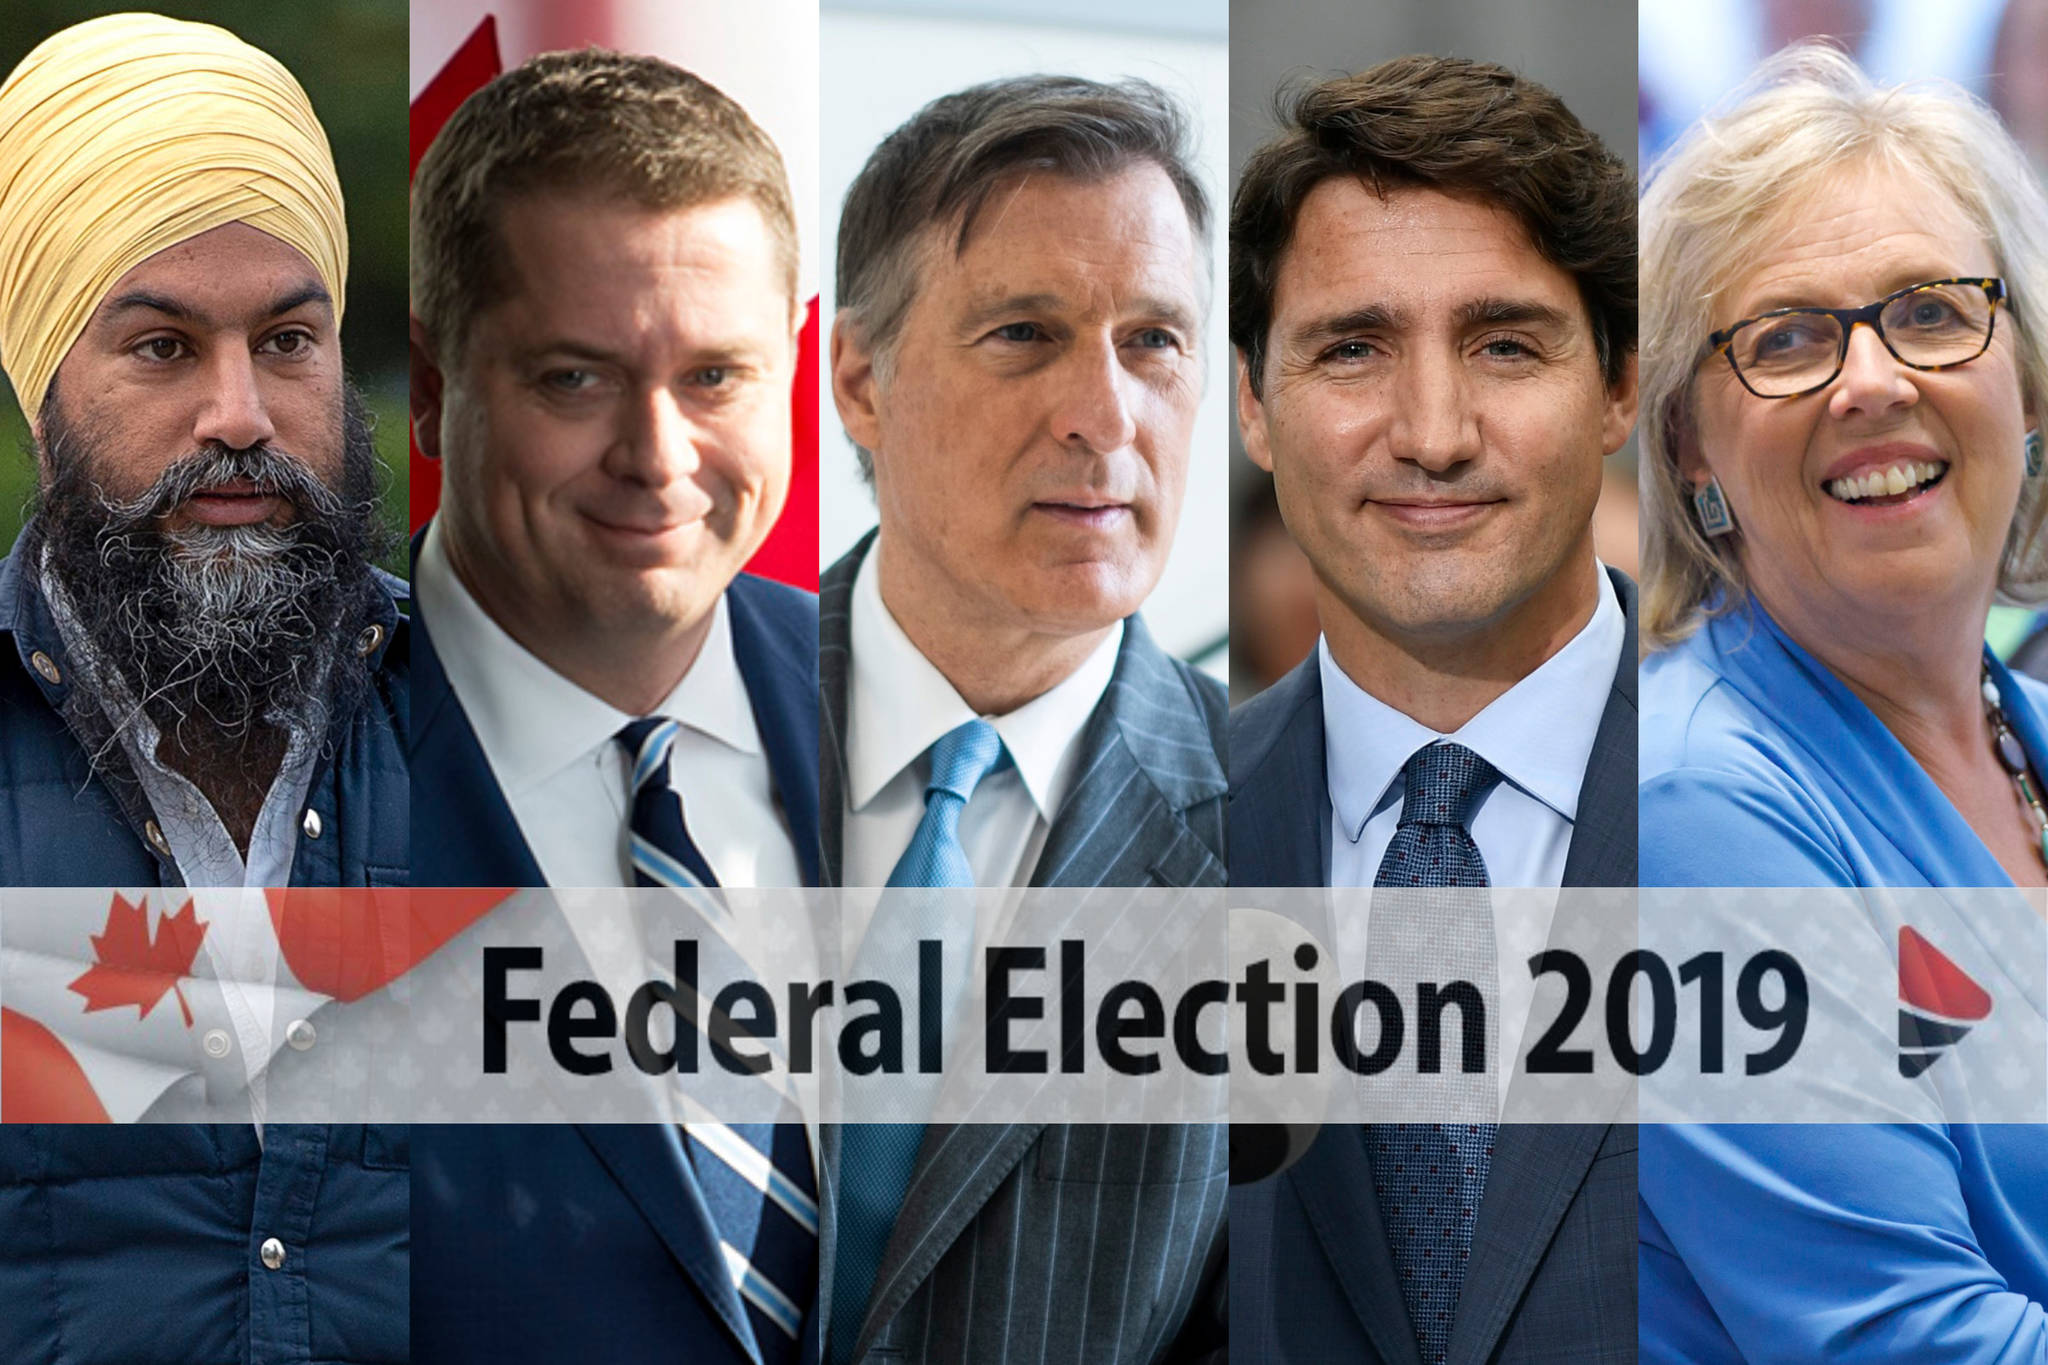 Getting personal: Day 23 of federal campaign heats up